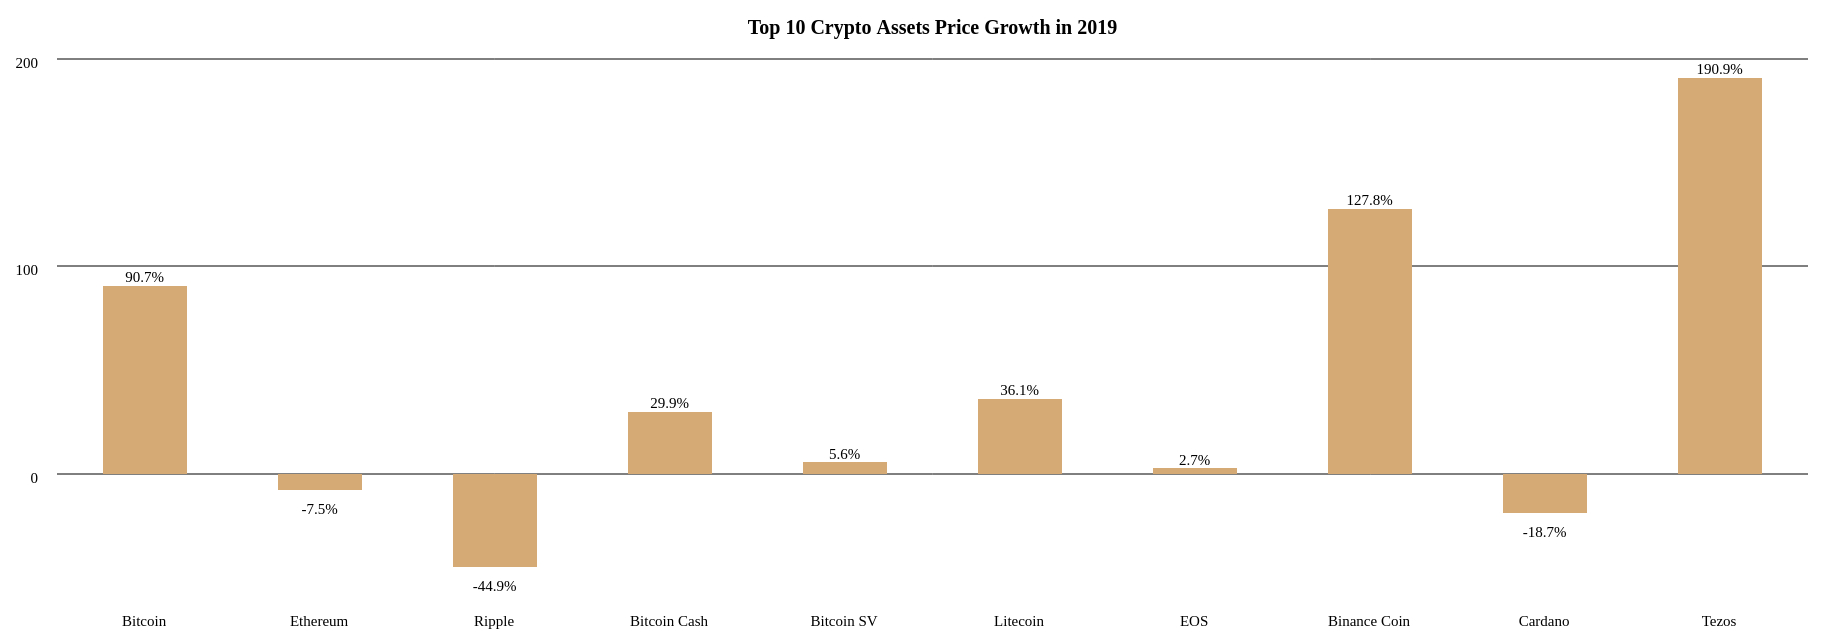 Bitcoin, Ethereum, Ripple, Bitcoin Cash, Bitcoin SV, Litecoin, EOS, Binance Coin, Cardano, and Tezos price growth percentages in 2019